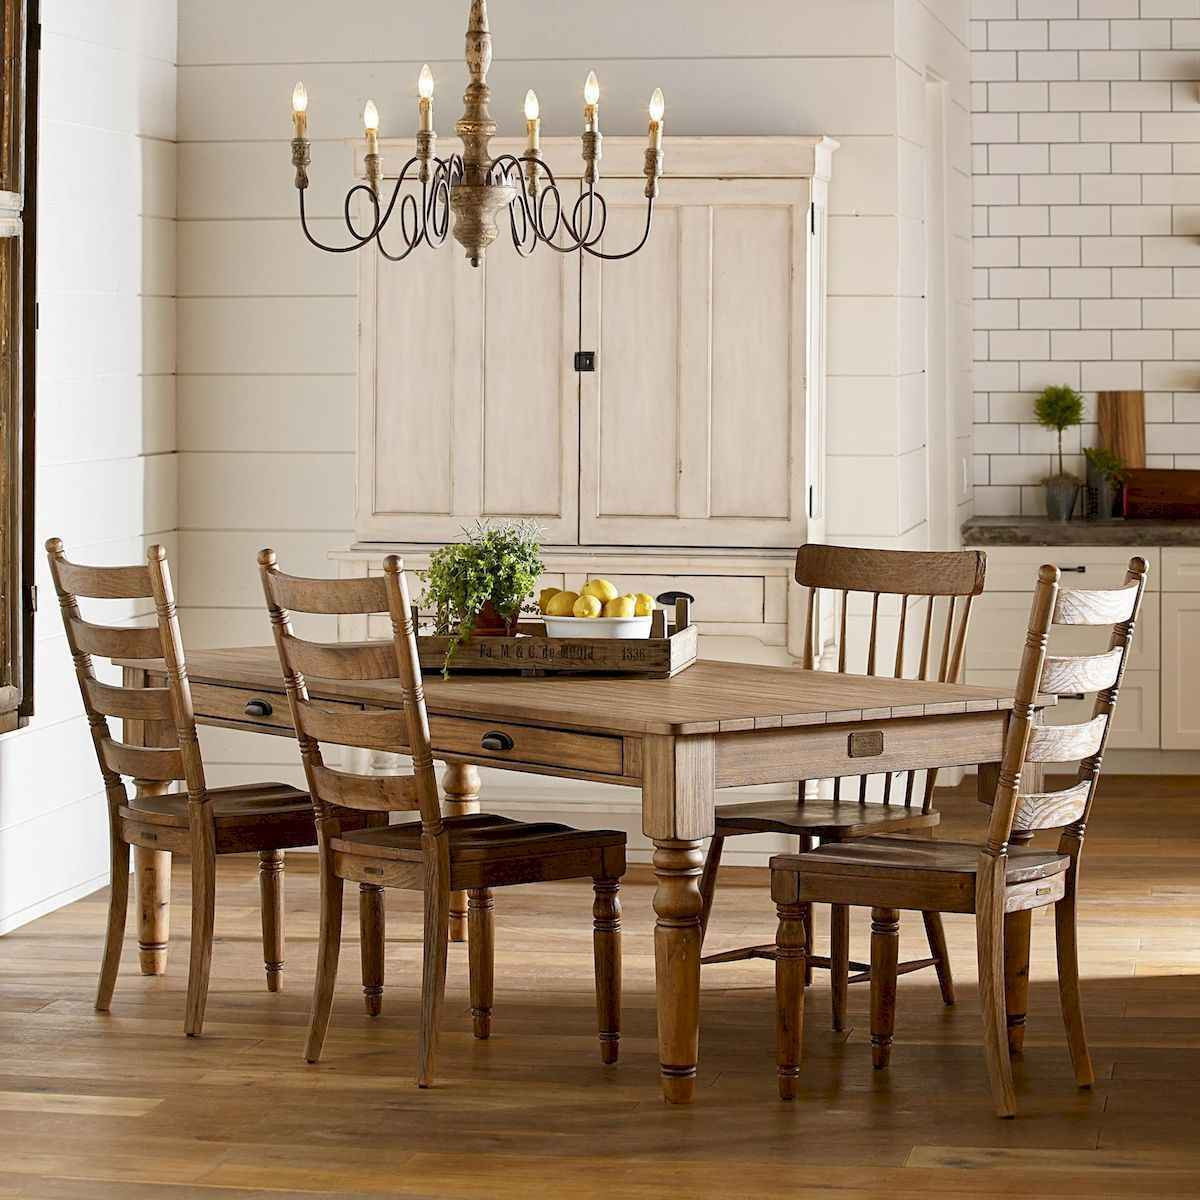 Furnitures Fashion Small Dining Room Furniture Design: 60 Modern Farmhouse Dining Room Table Ideas Decor And